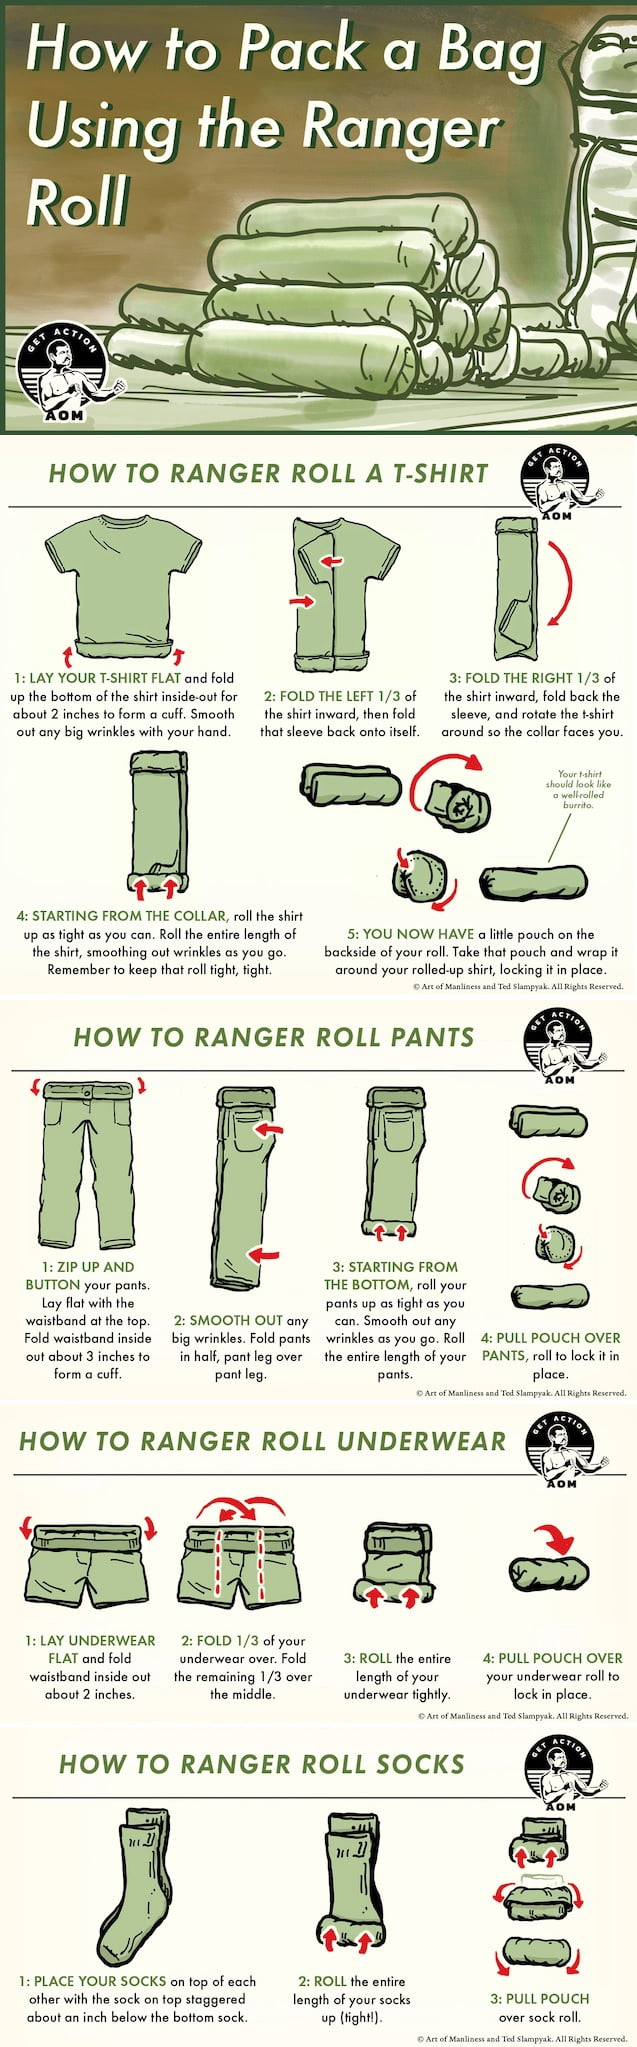 Guide: How to Pack a Bag Using the Ranger Roll